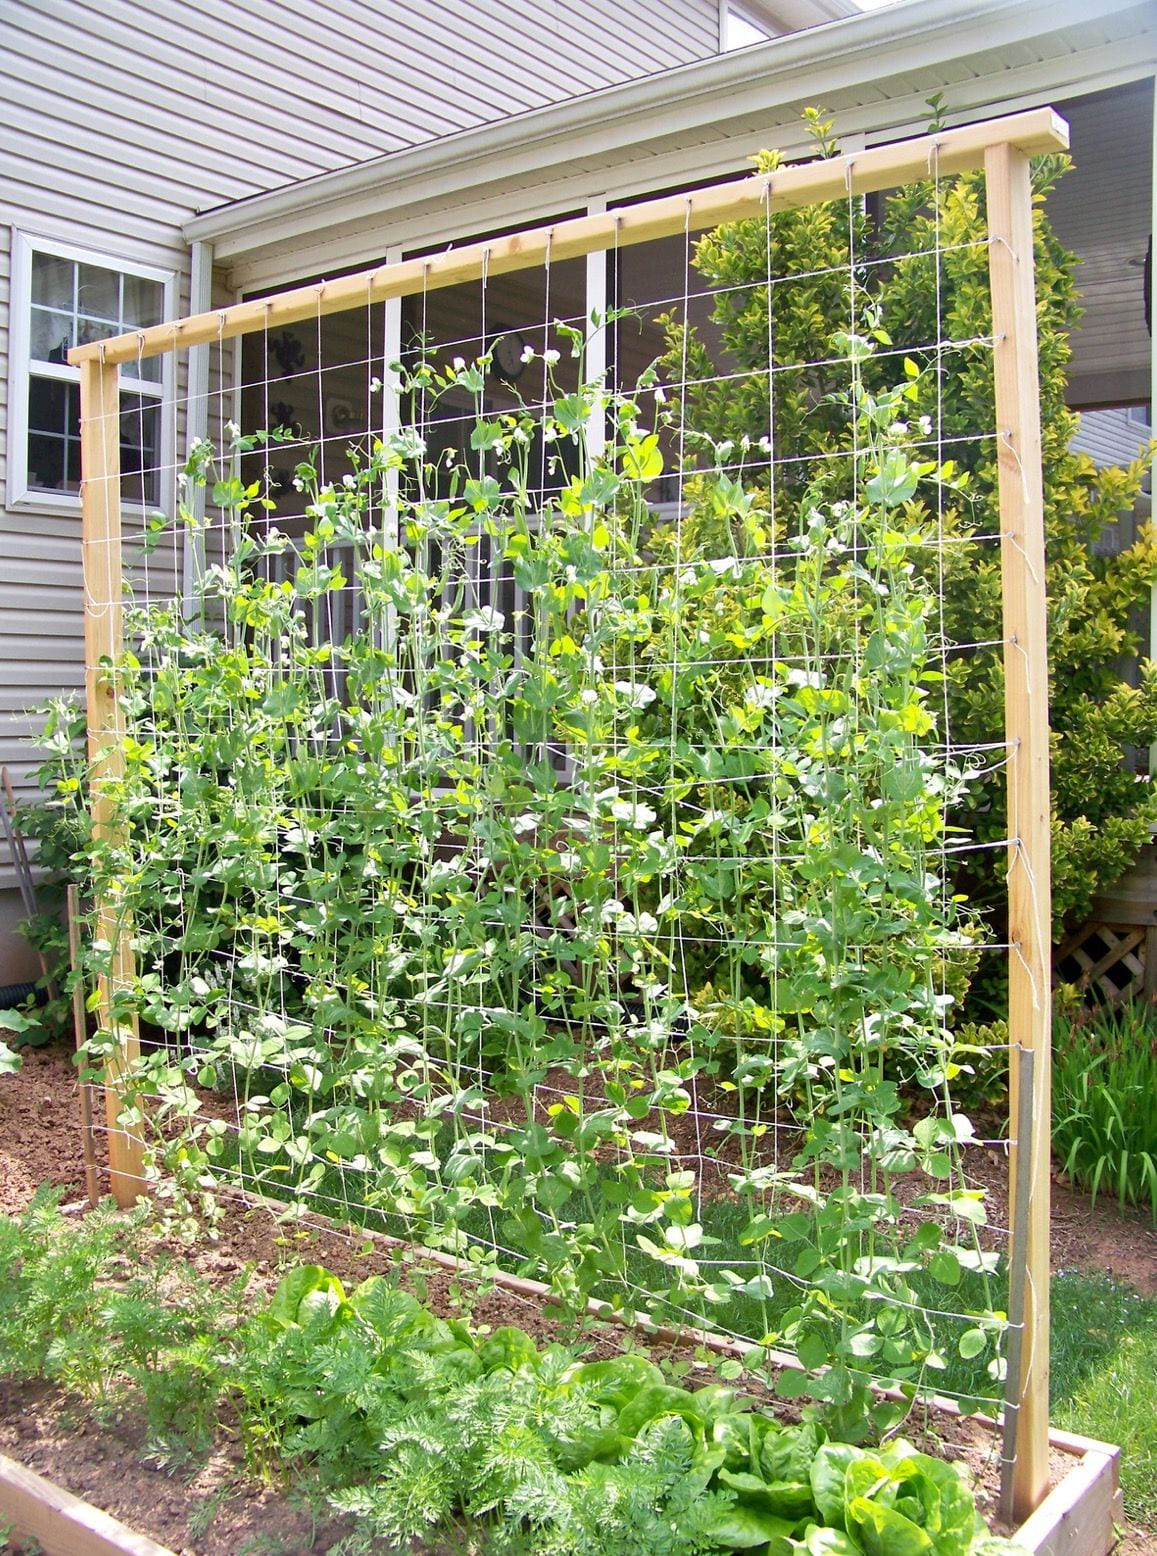 Simphome.com pin michelle abriani on garden pinterest garden trellis for vegetable garden trellis ideas